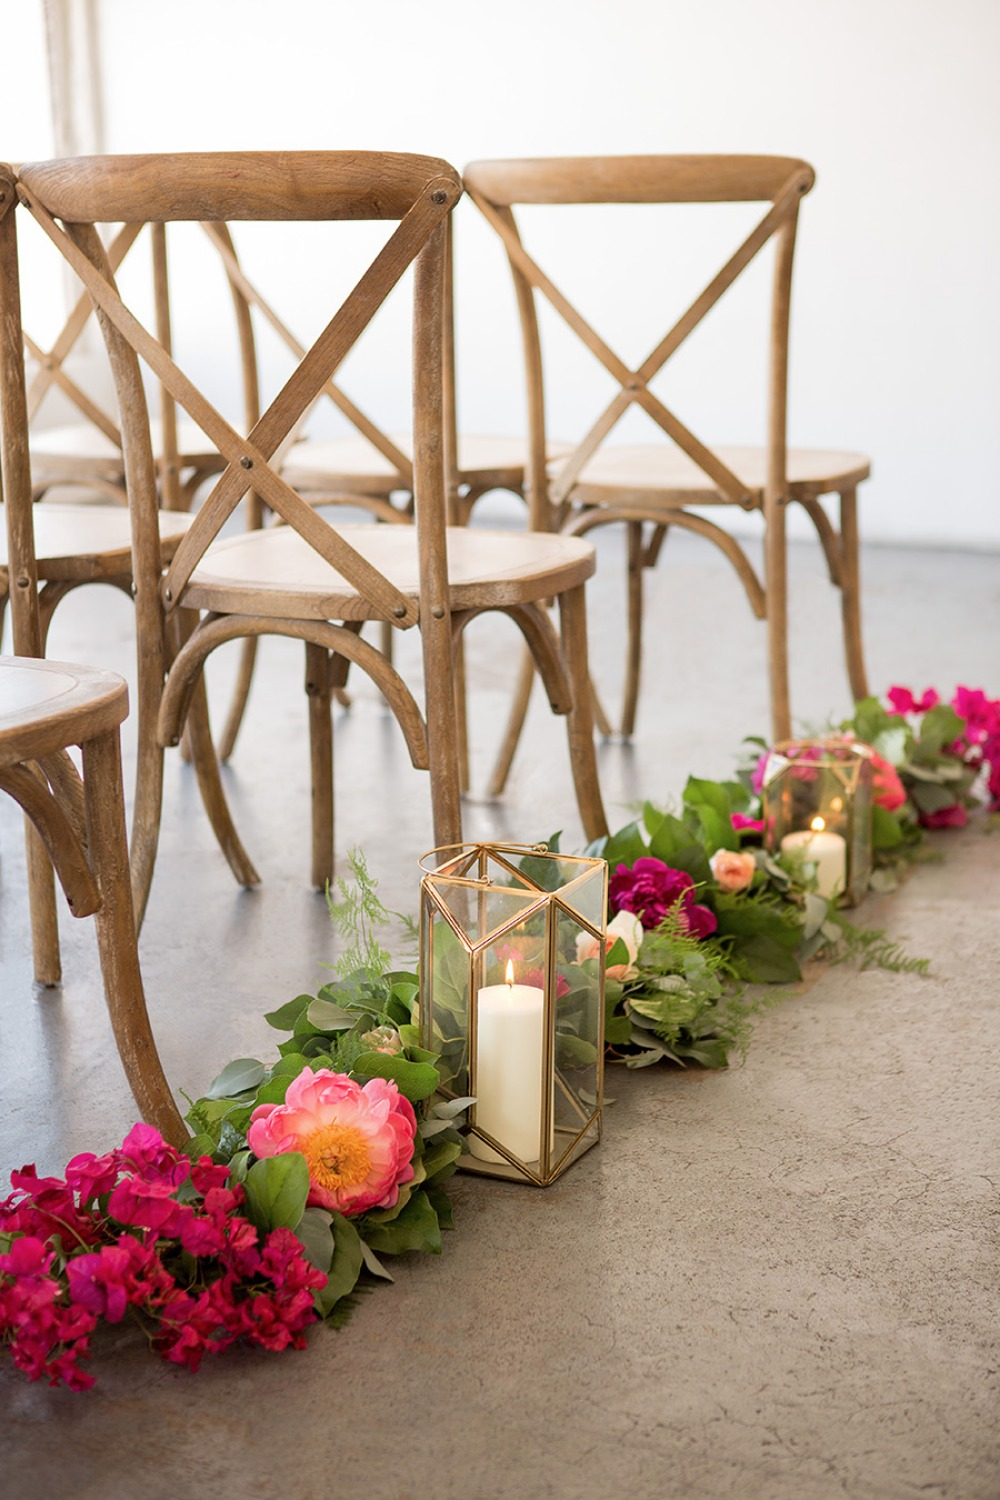 Florals and lantern aisle decor